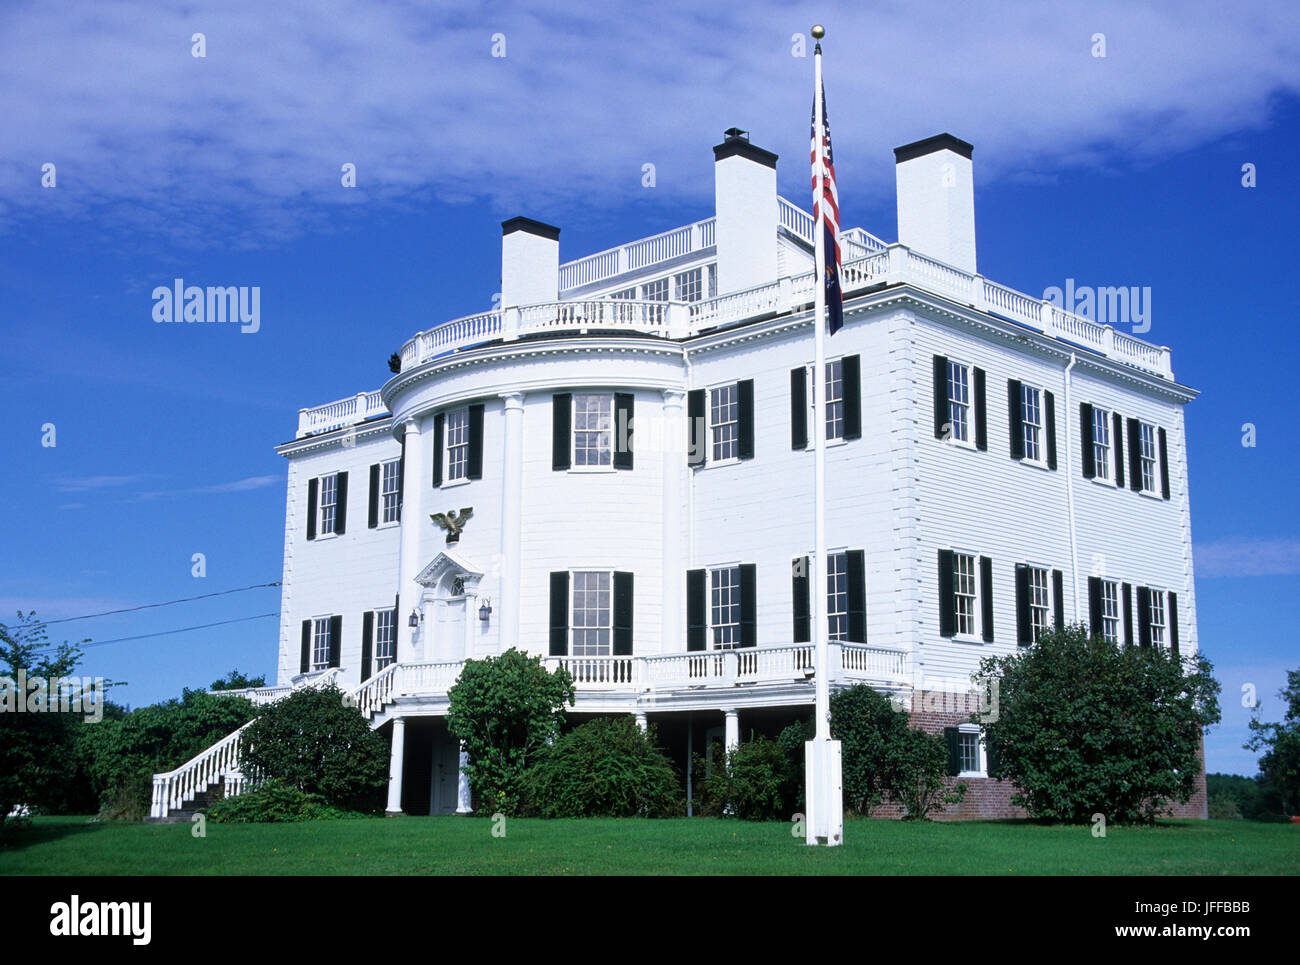 View picture of general henry knox museum montpelier thomaston - Montpelier General Henry Knox Museum Thomaston Maine Stockbild